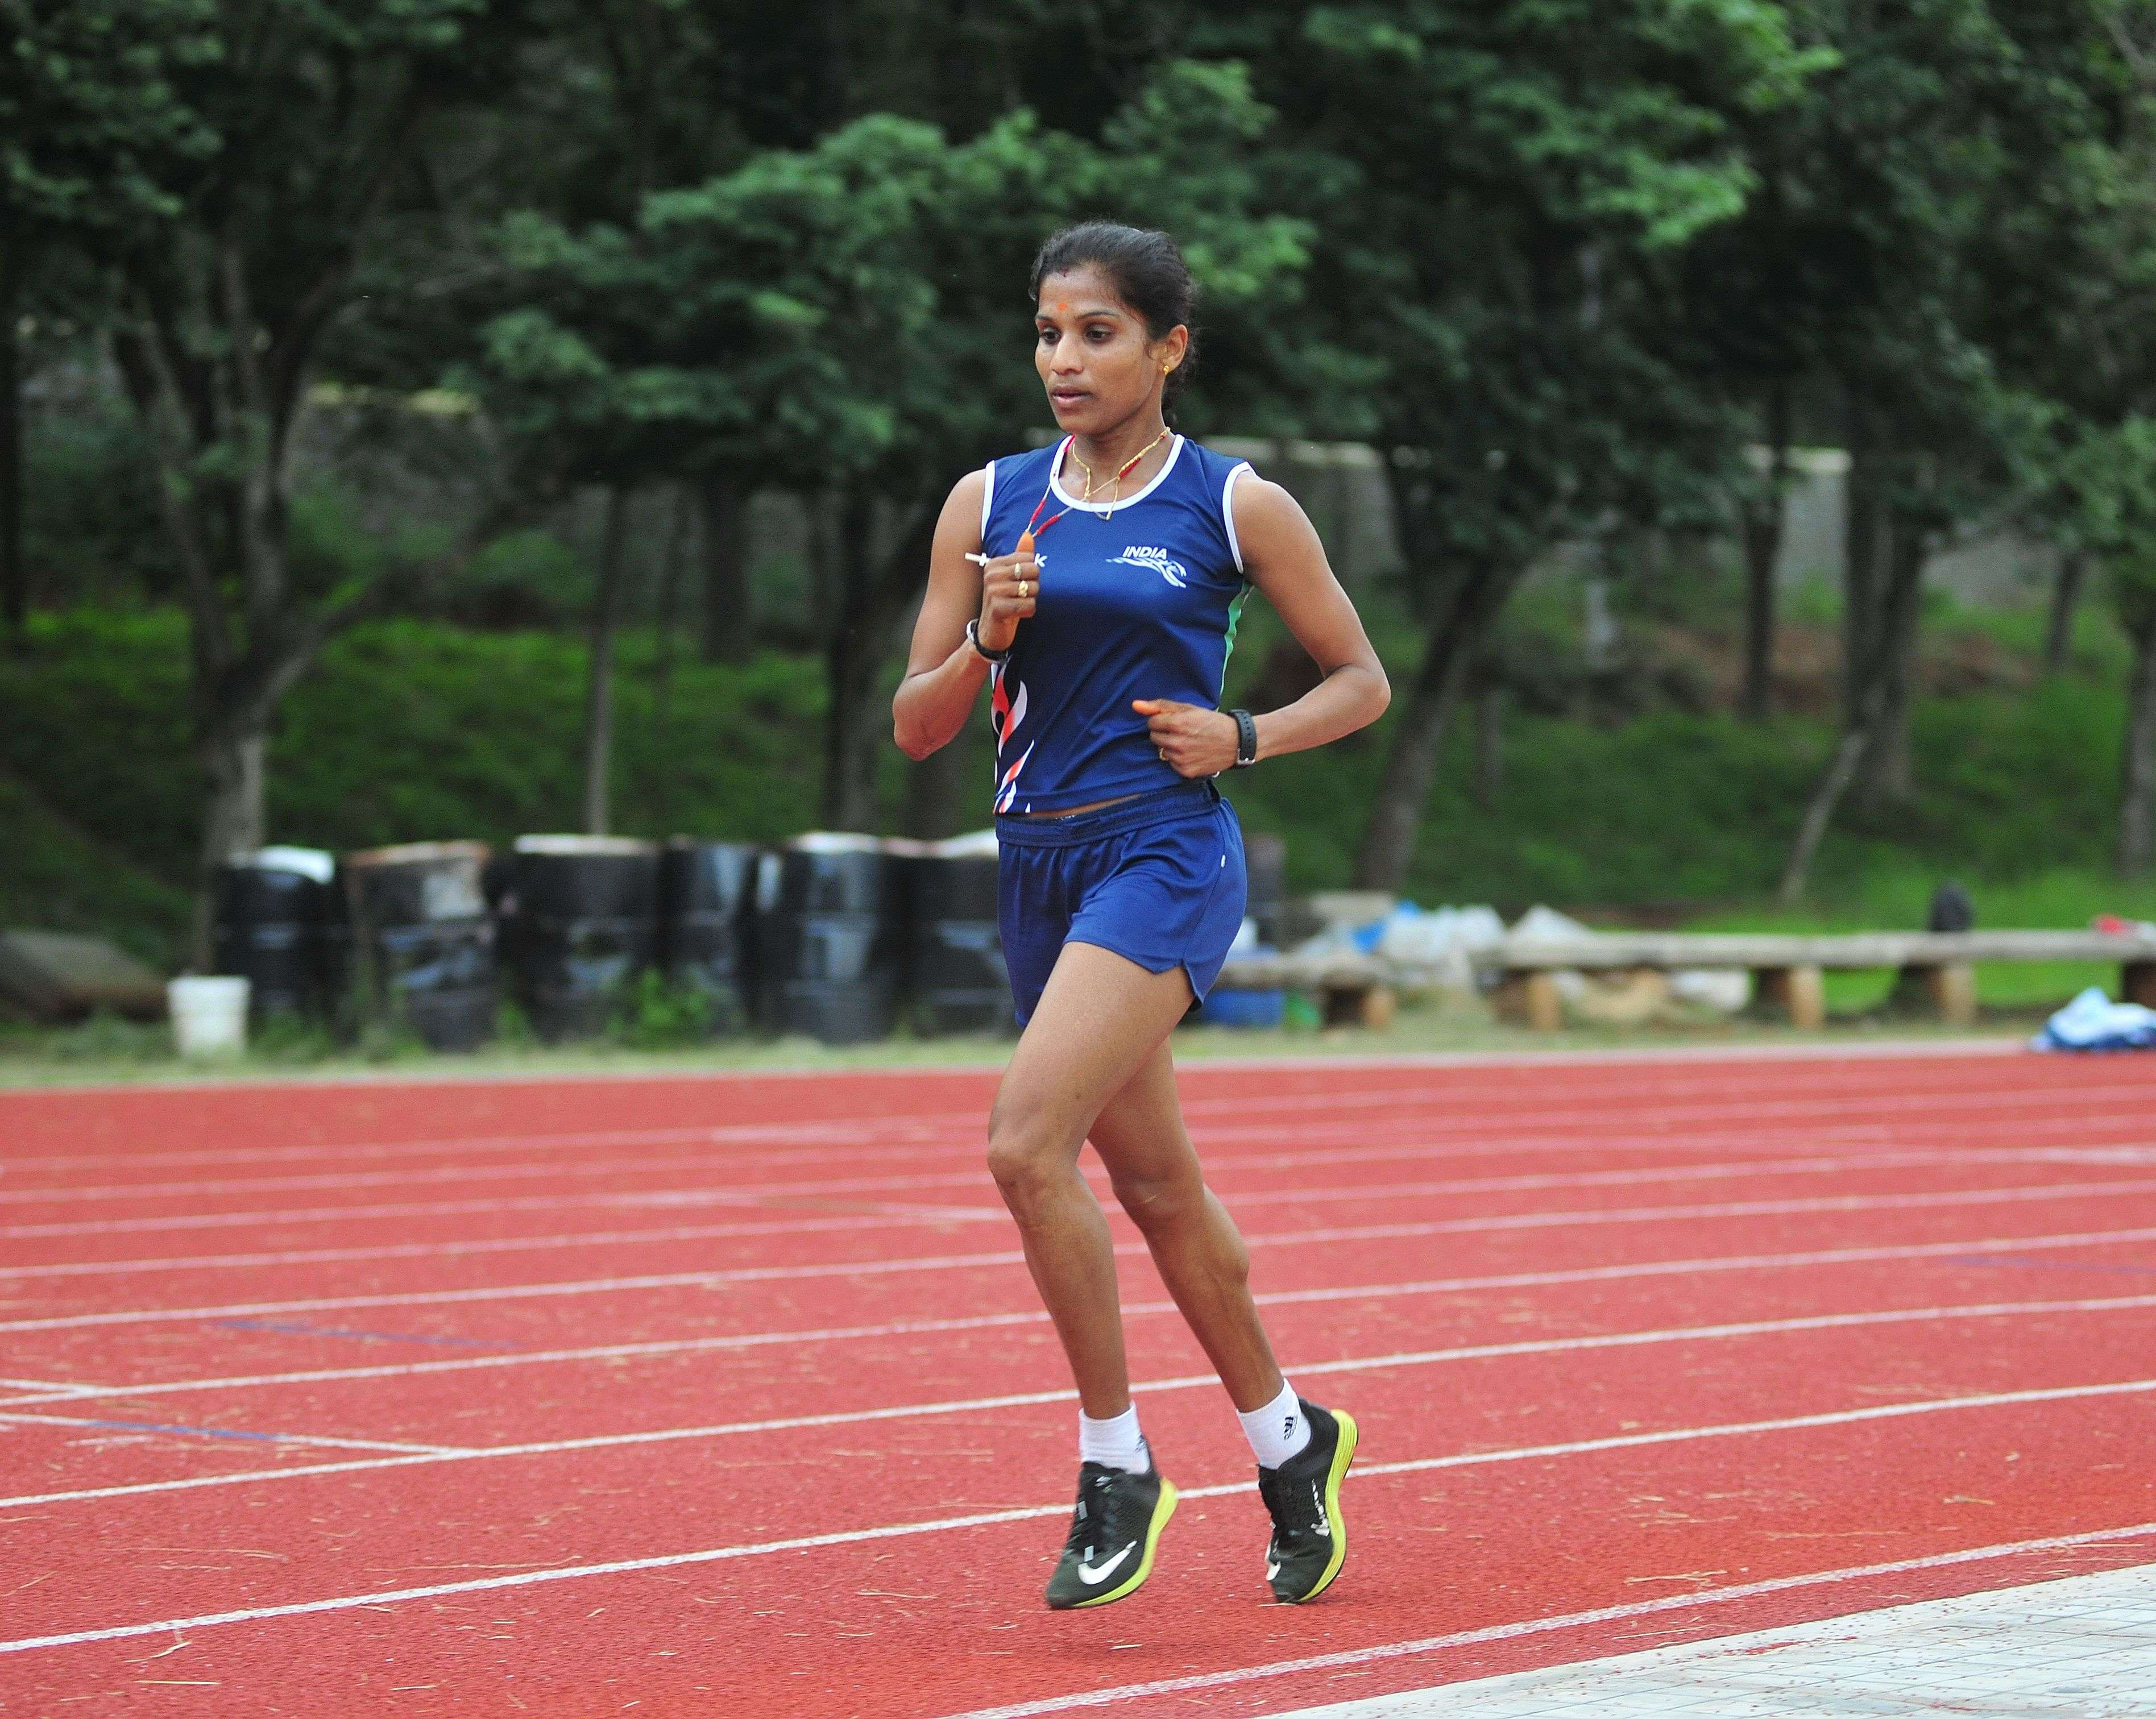 Indian athletes O. P. Jaisha during practice session ahead of RIO Olympics games, seen at SAI in Bengaluru on Tuesday.